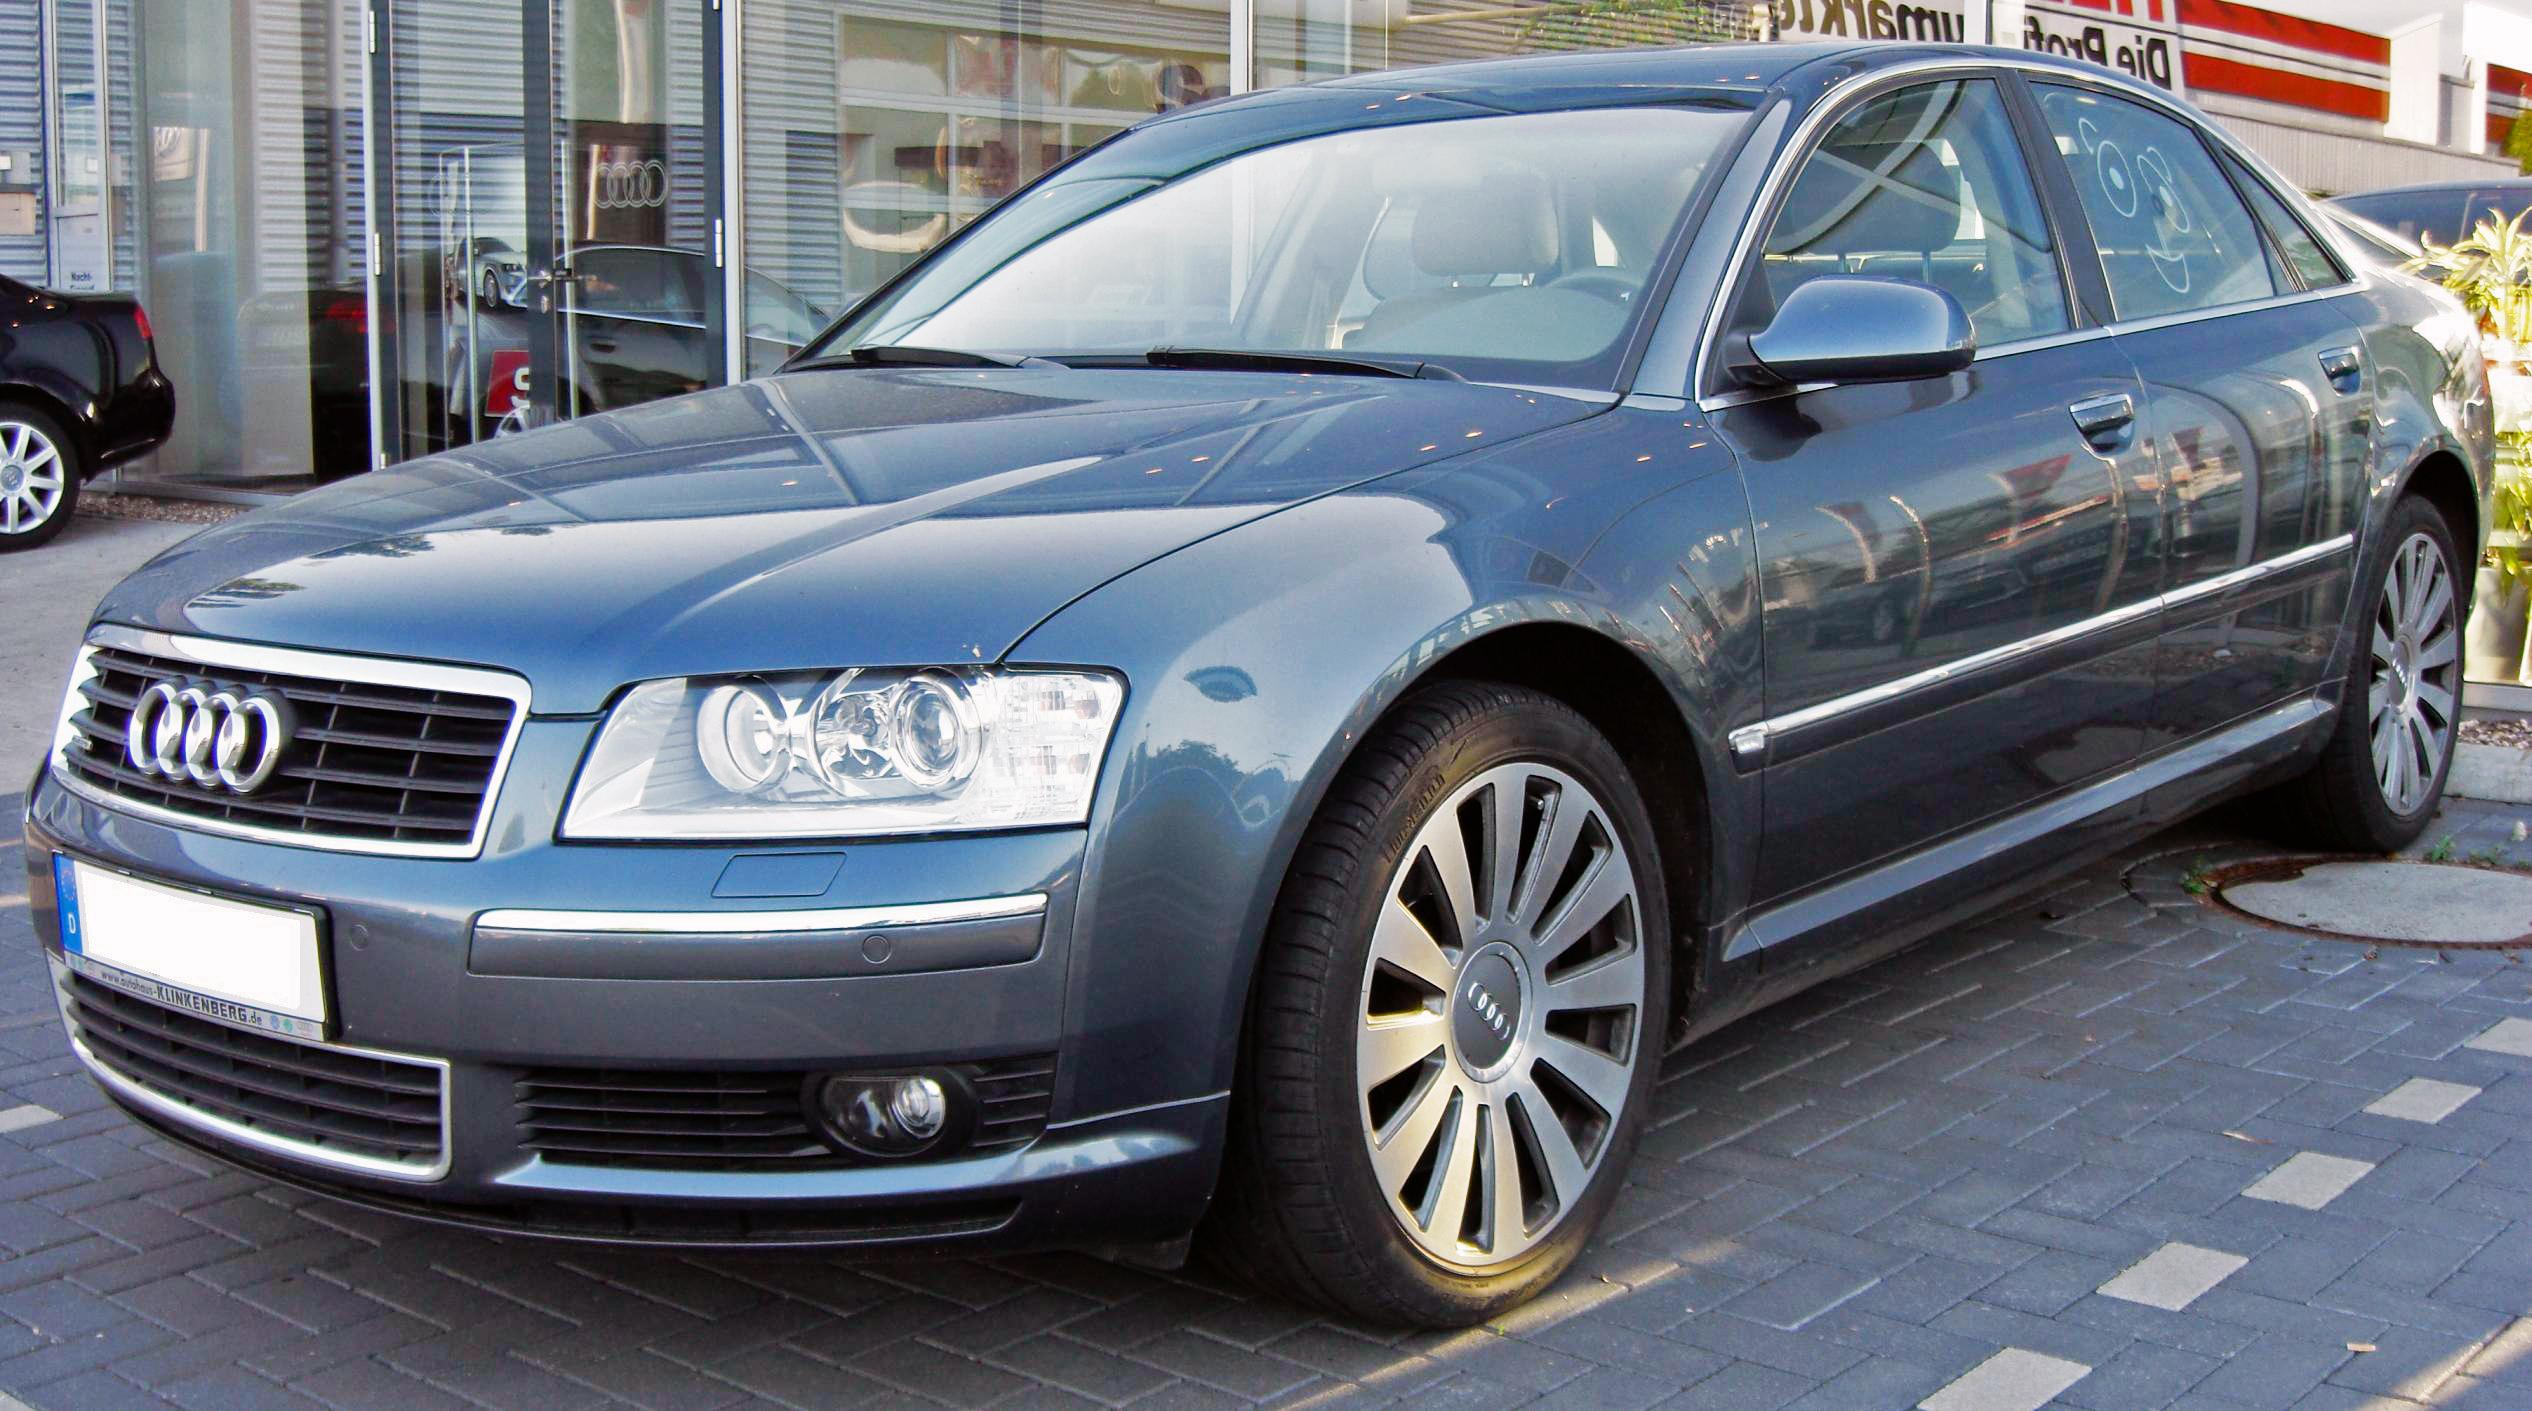 File:Audi A8 (2003-2005) 4.2 front.jpg - Wikimedia Commons